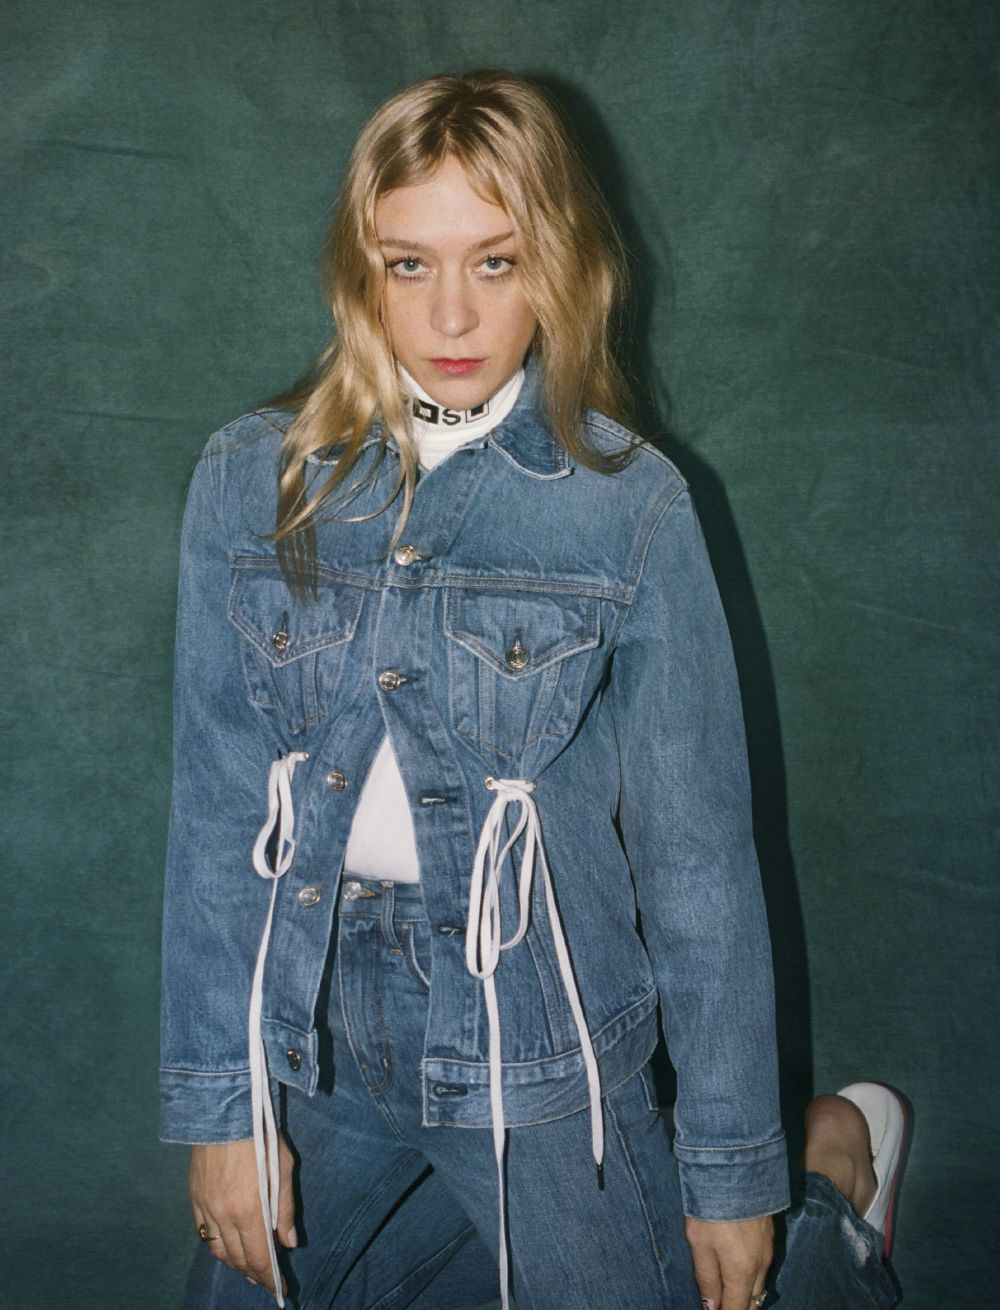 Chloe Sevigny in a denim jacket and jeans for PSWL.